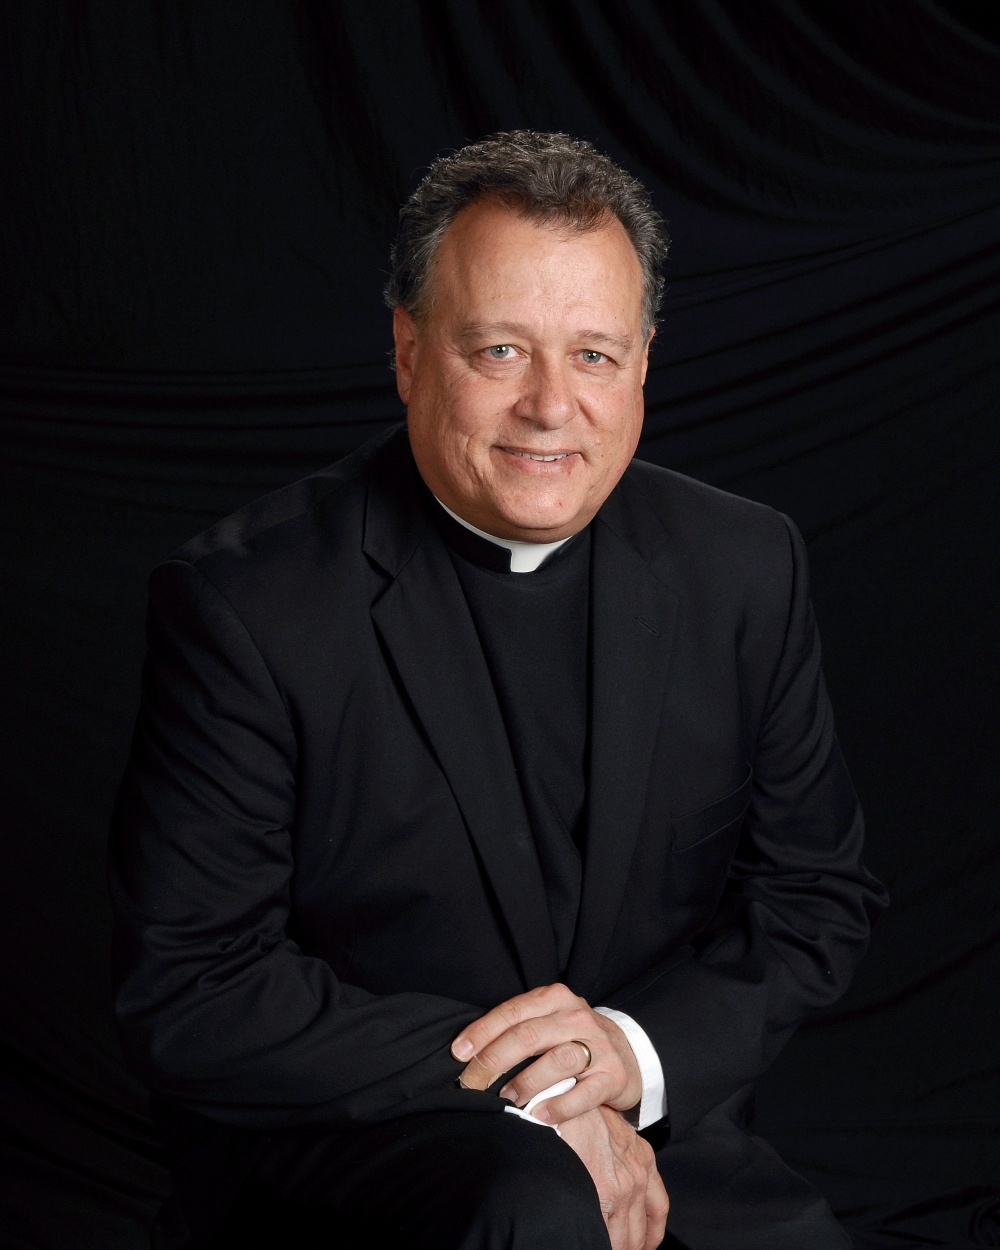 Fr. Andrew - Vicar of the Southwestern Region of the Metropolis of San Francisco